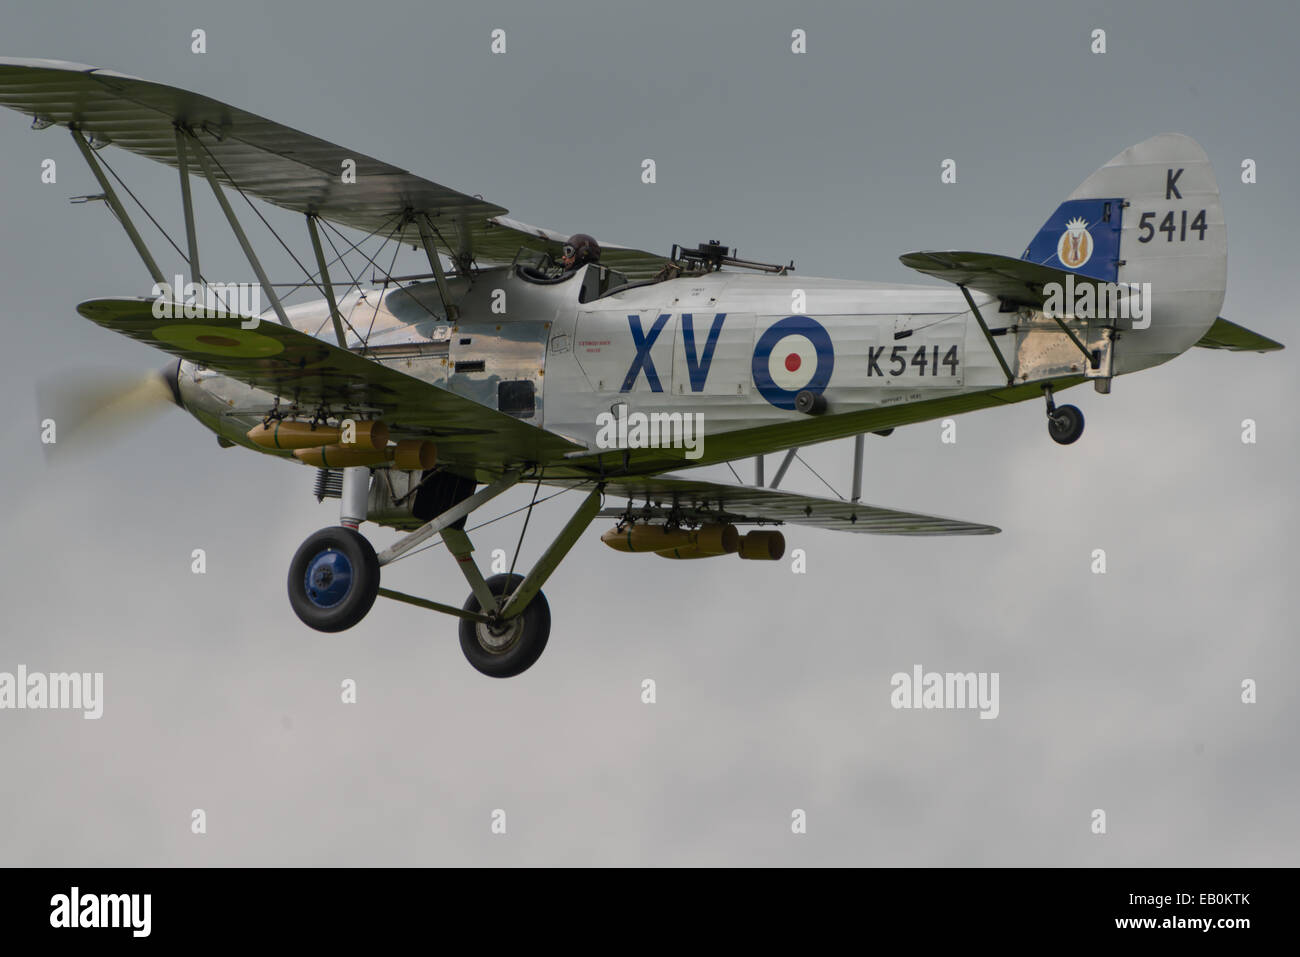 Biggleswade, UK - 29 June 2014: A  vintage  Hawker Hind bi-plane on display at the Shuttleworth Collection air show. - Stock Image